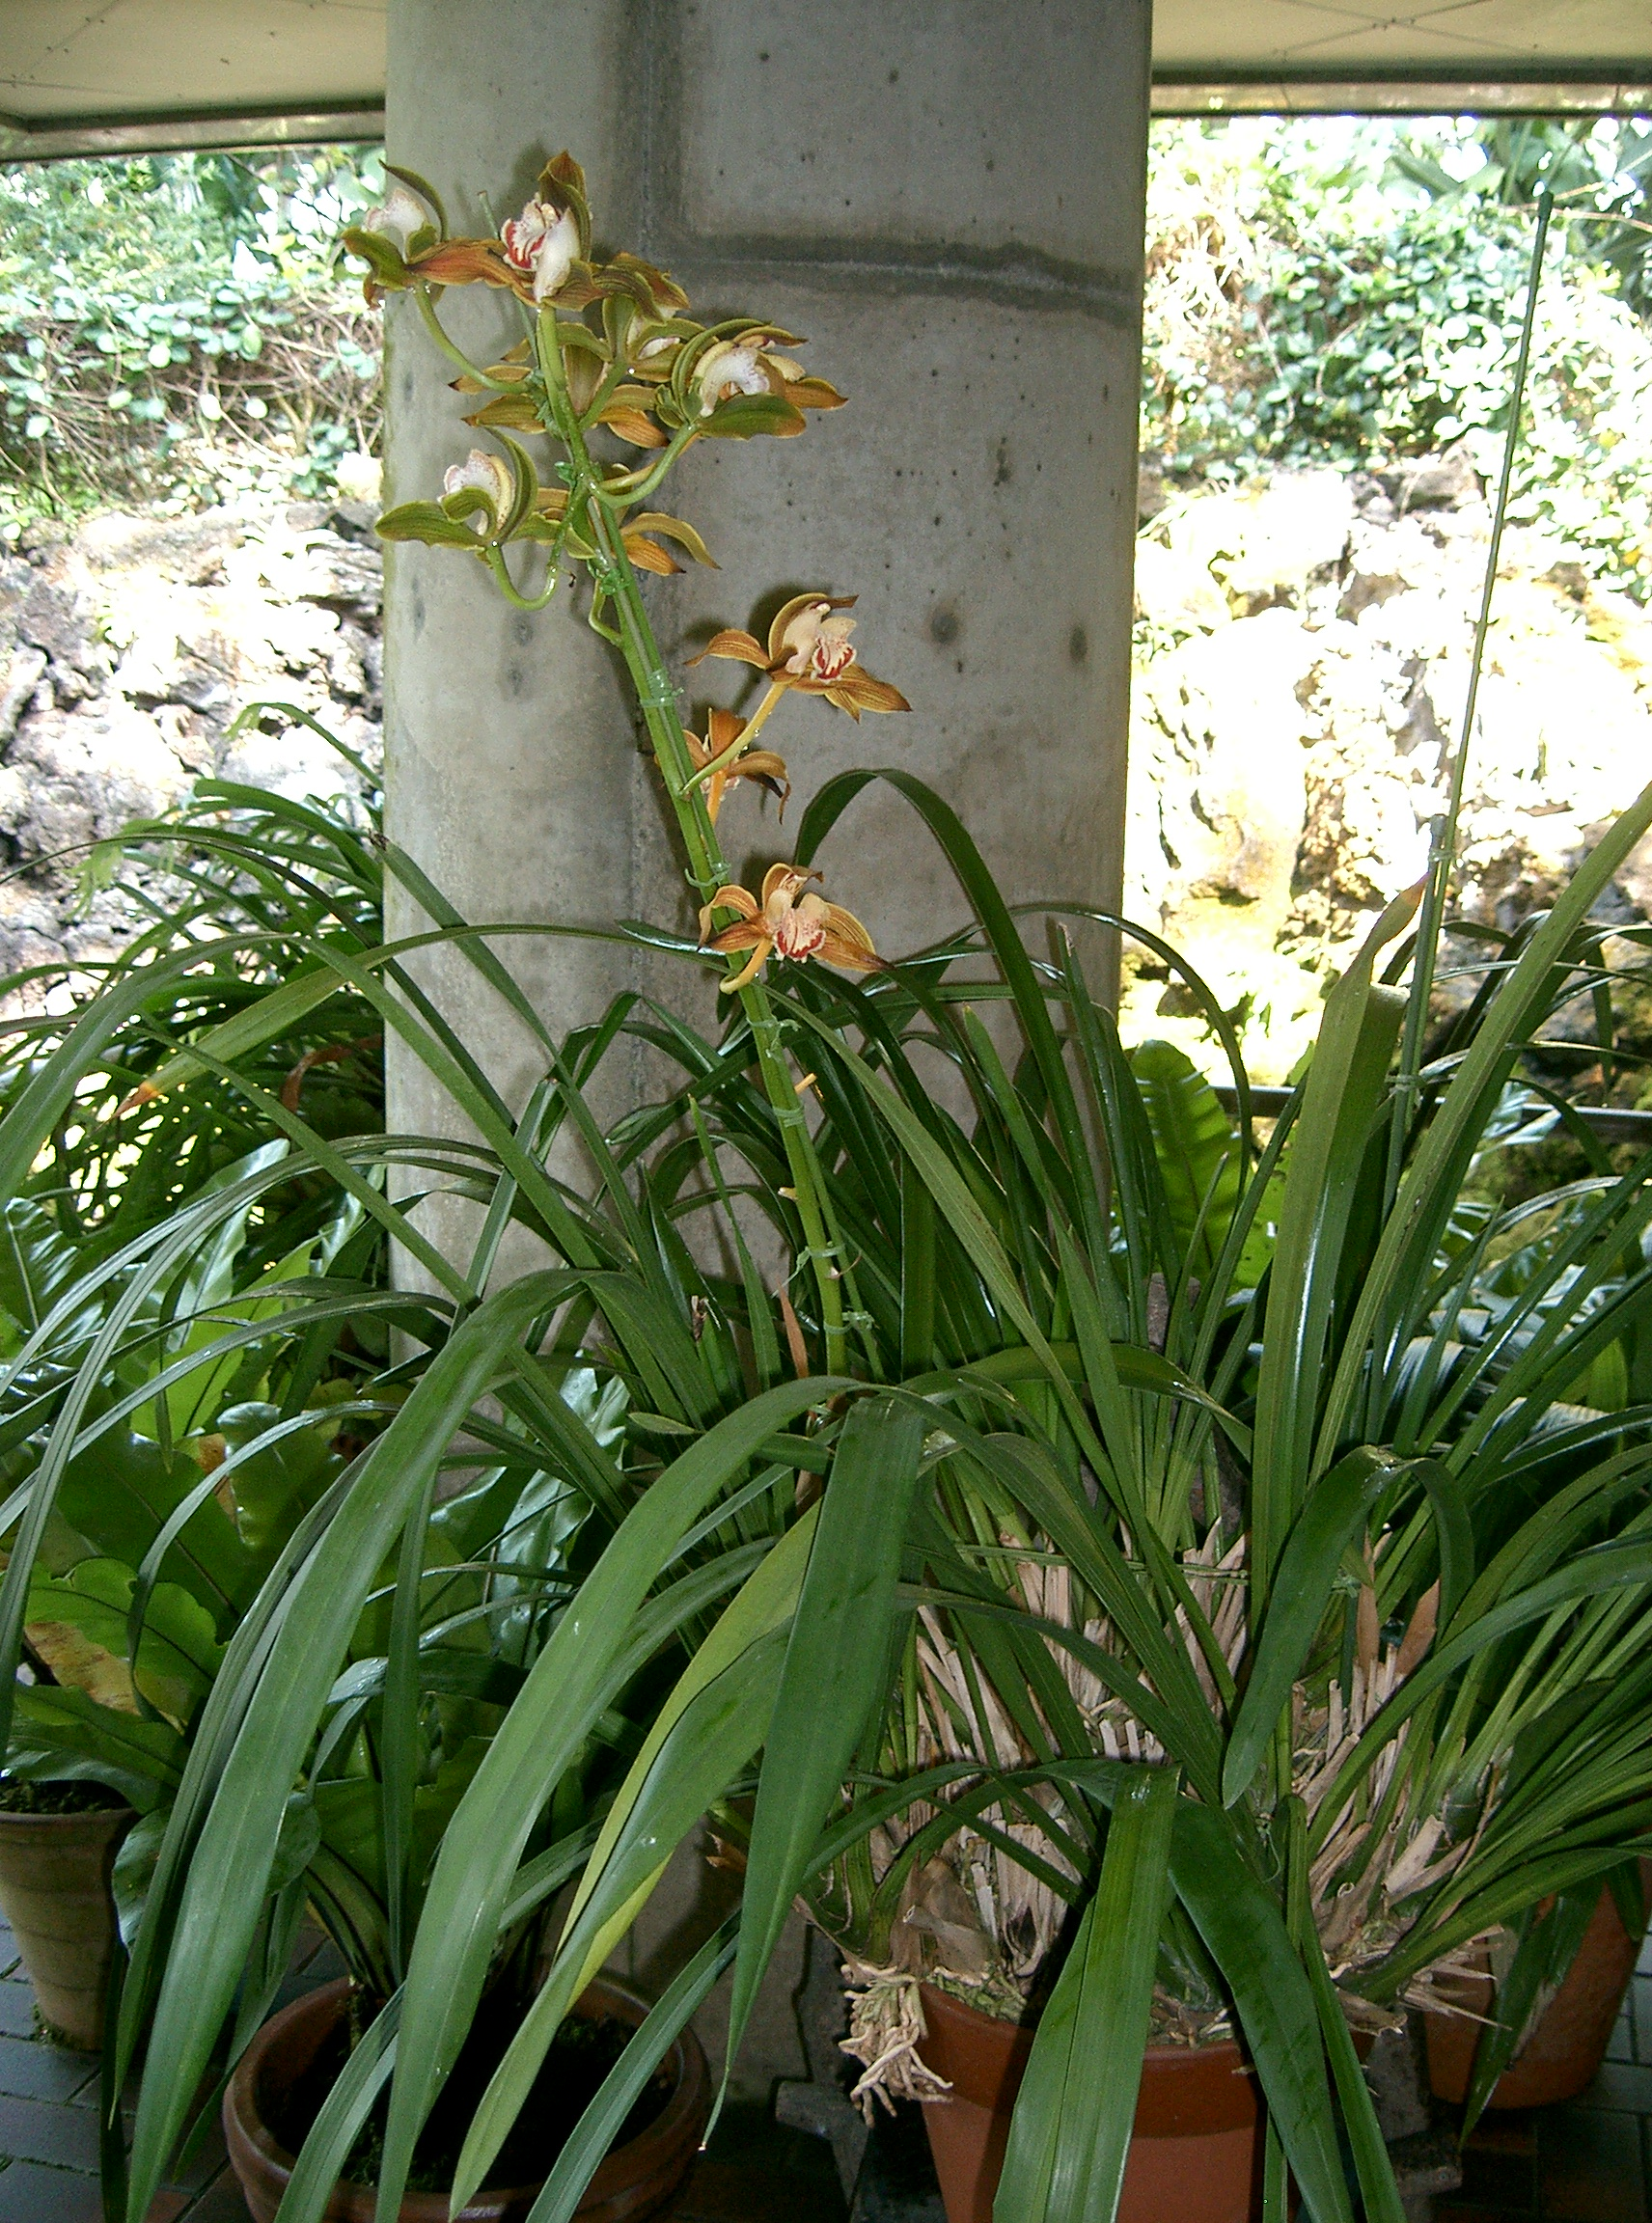 http://upload.wikimedia.org/wikipedia/commons/a/a2/Cymbidium_tracyanum1.jpg